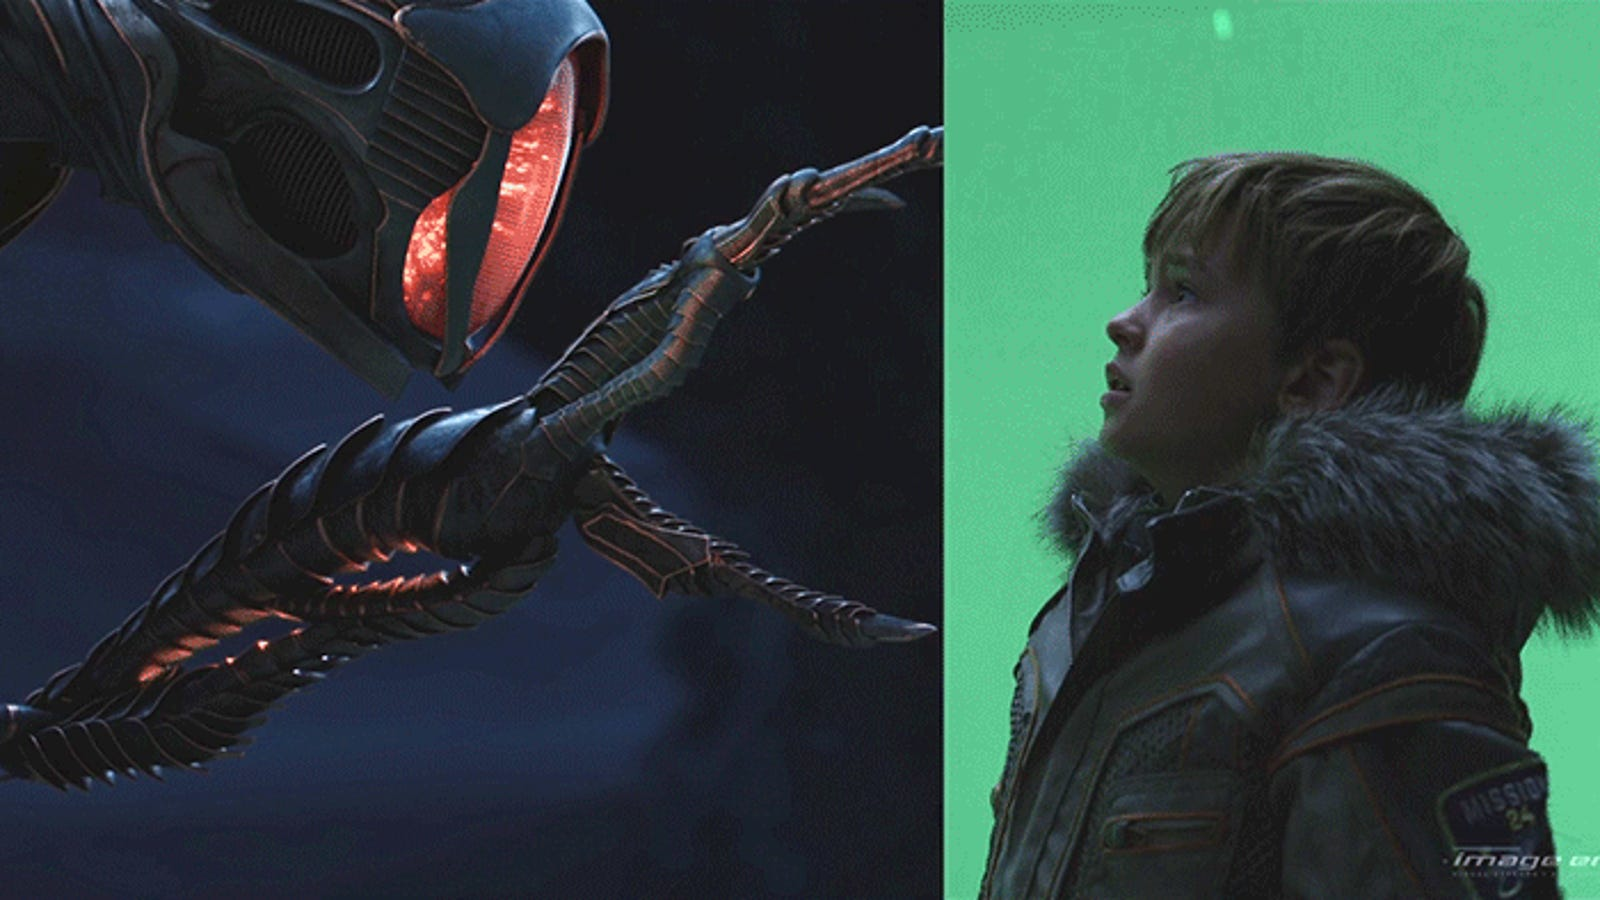 Here's a Great Look at the Lost in Space VFX Used to Put Will Robinson in Serious Danger